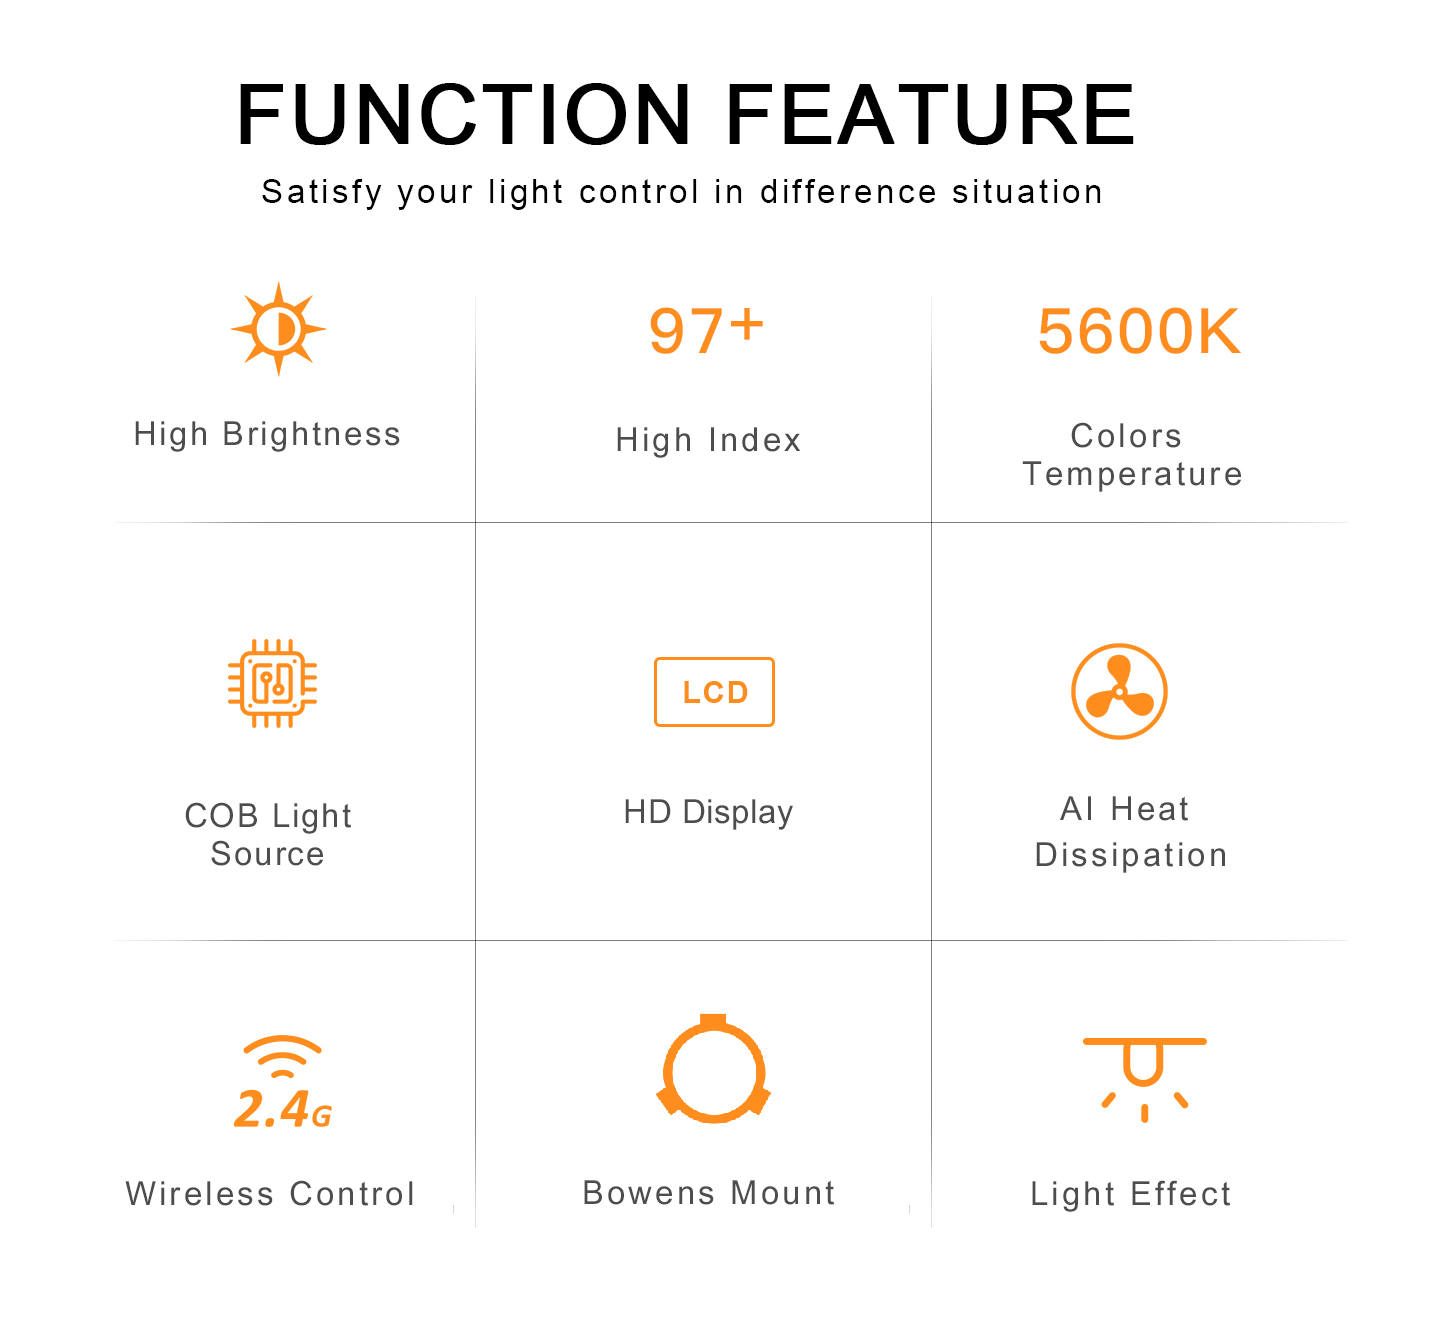 FUNCTION FEATURE